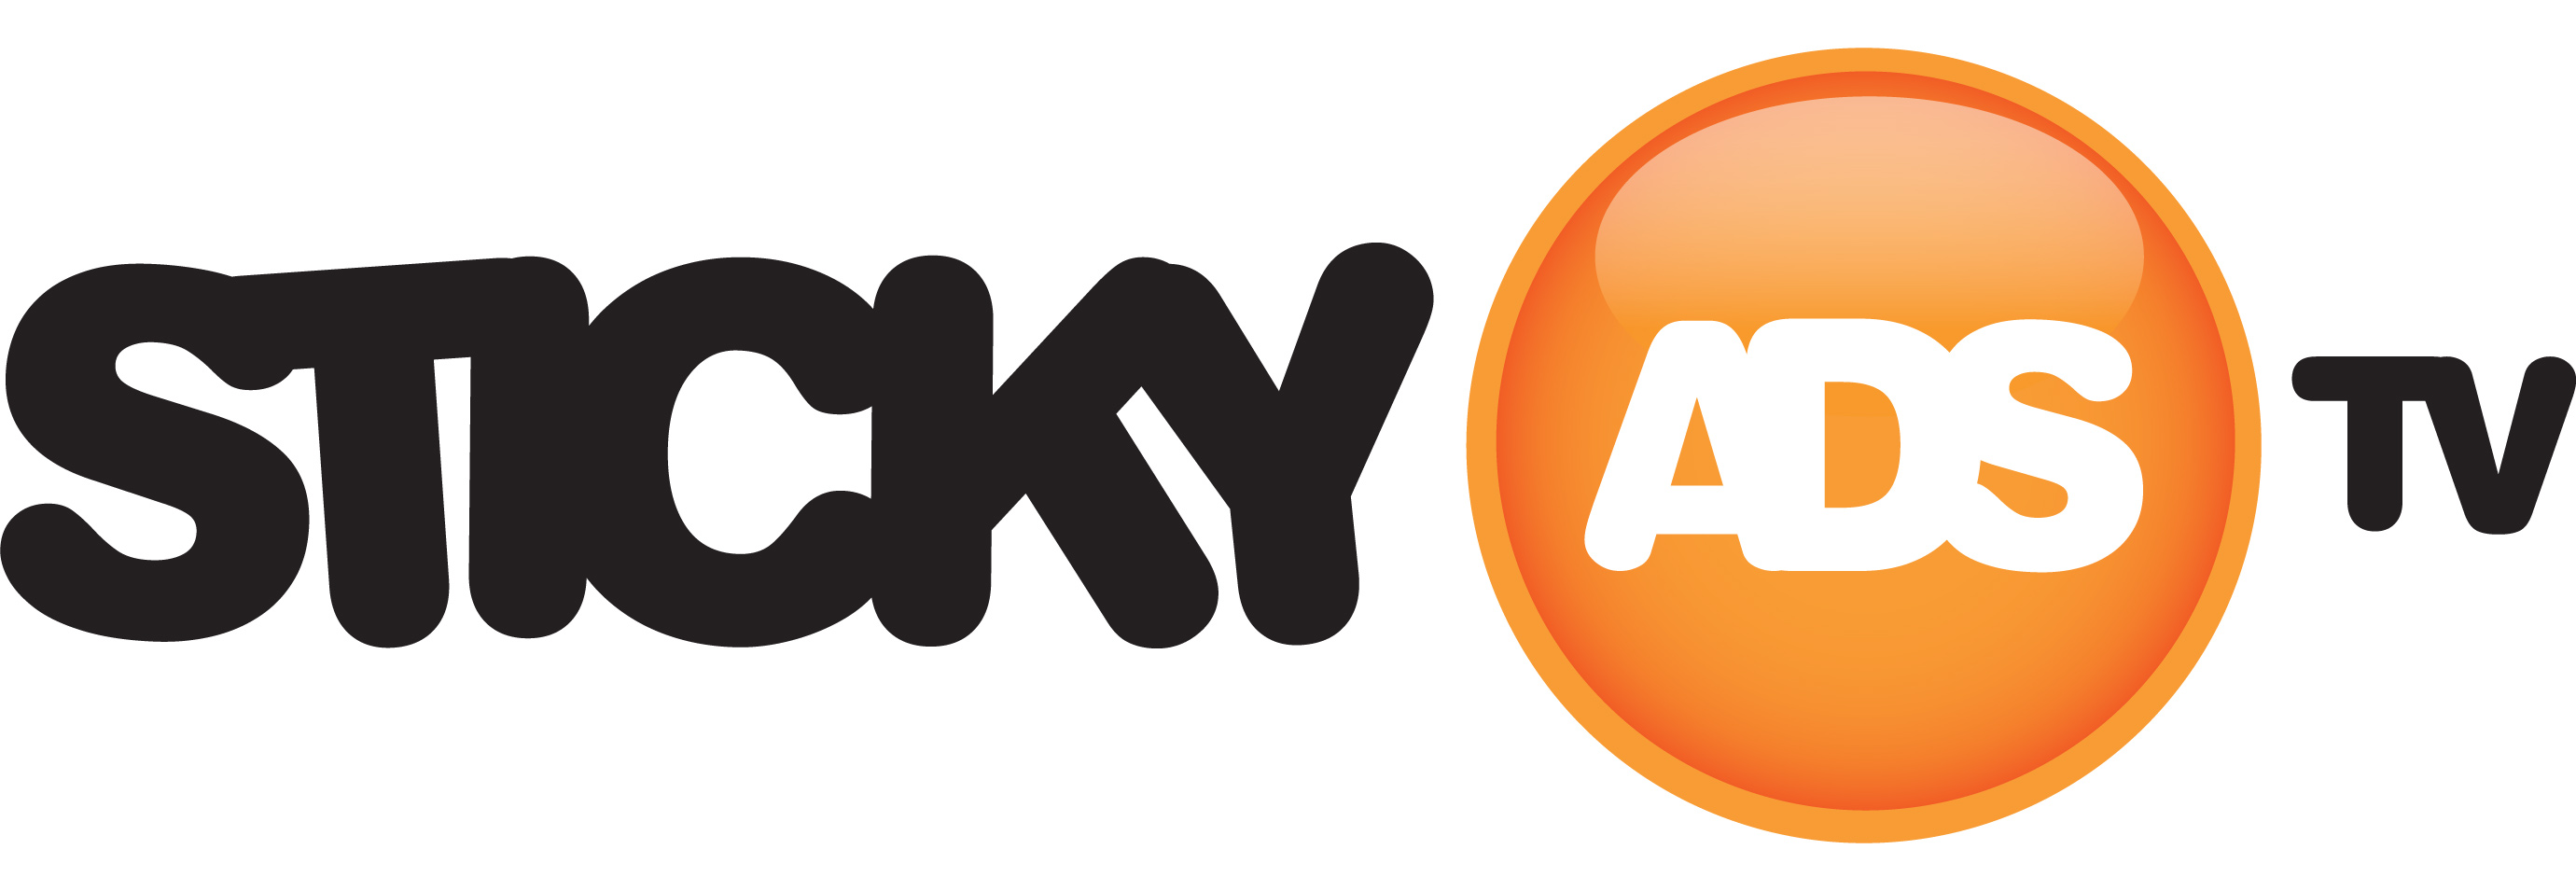 https://i1.wp.com/frenchweb.fr/wp-content/uploads/2011/05/logo-StickyADStv.jpg